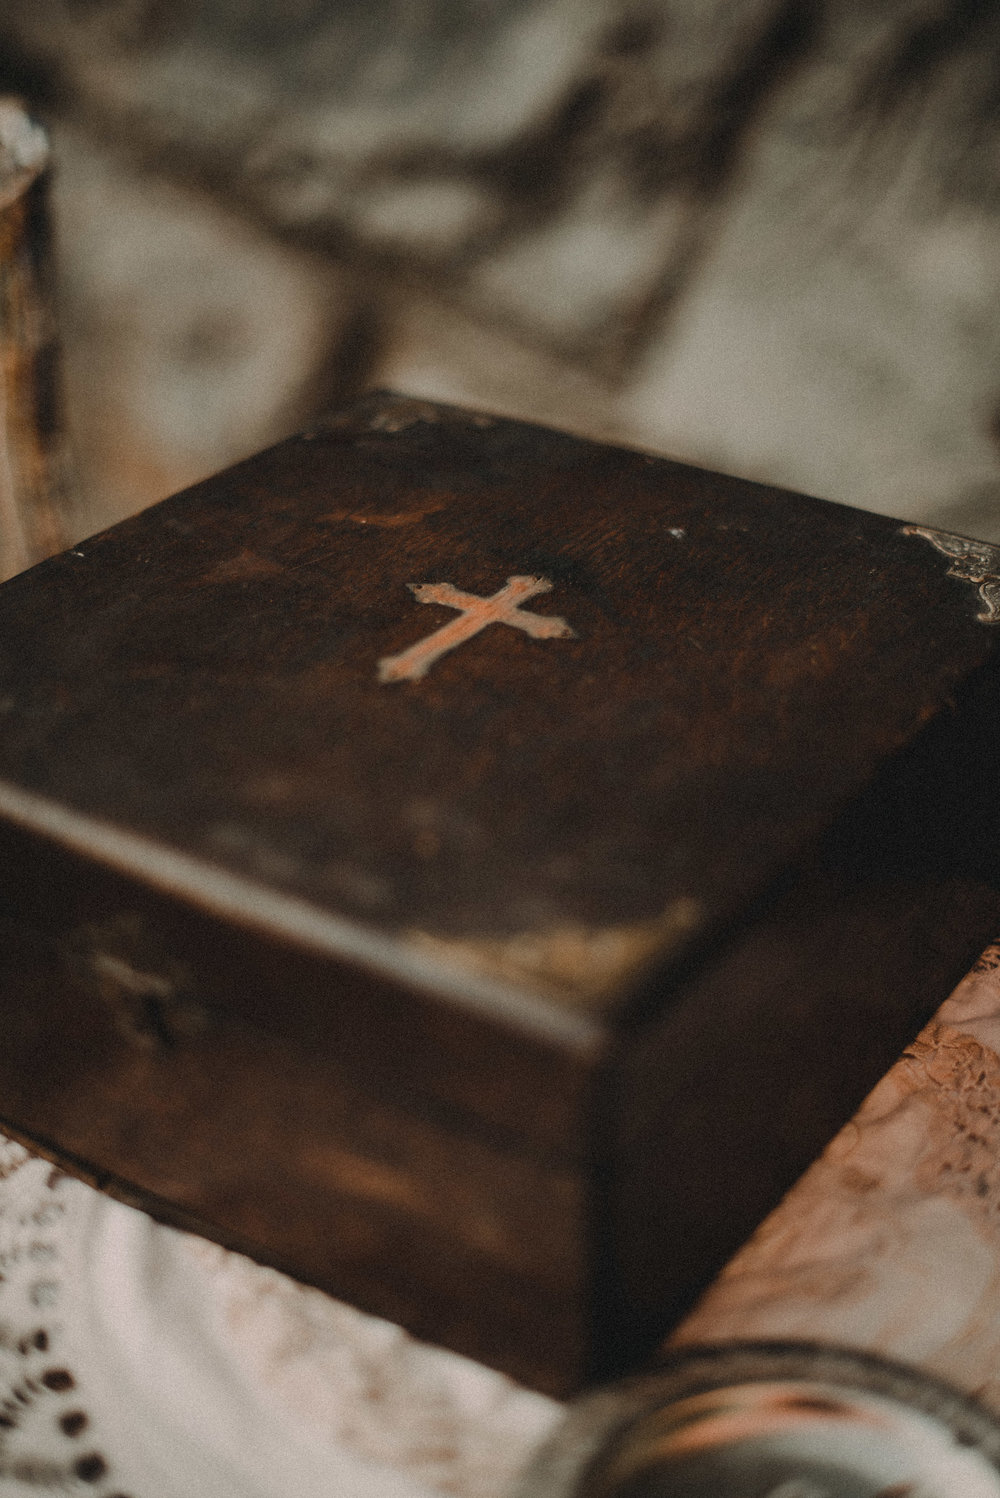 Old and wooden religious box